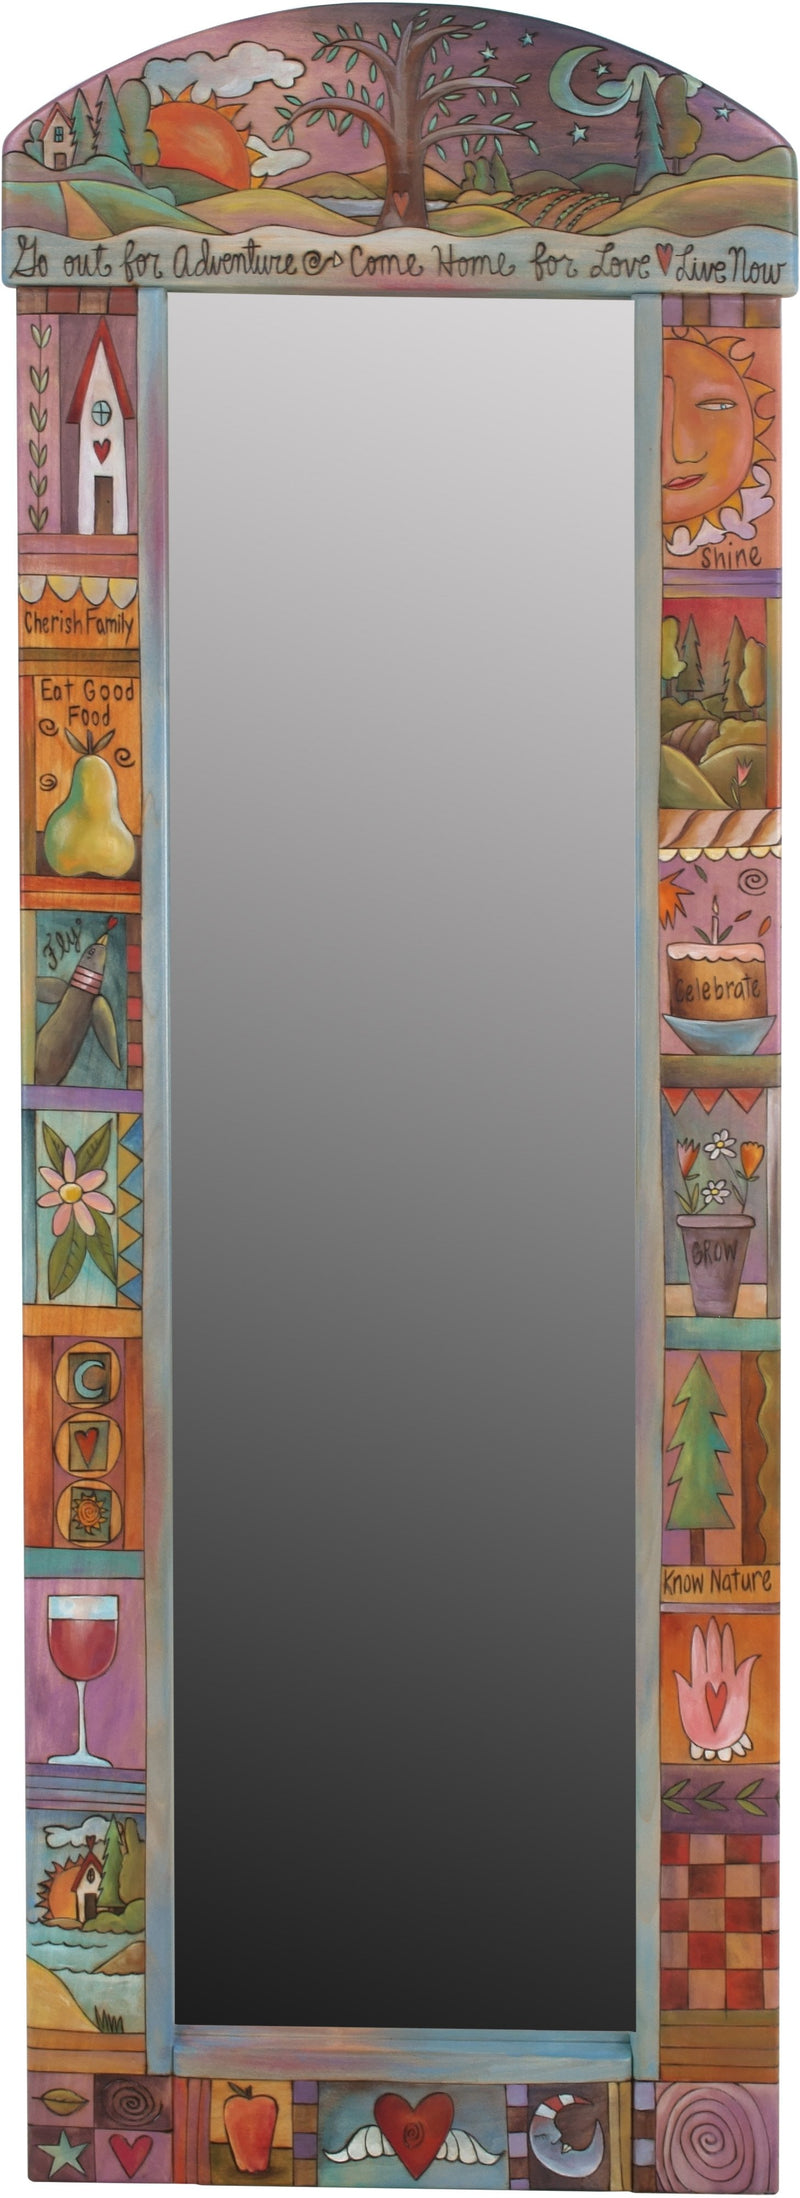 "Wardrobe Mirror –  ""Go Out for Adventure/Come Home for Love"" mirror with sun and moon over tree of life motif"